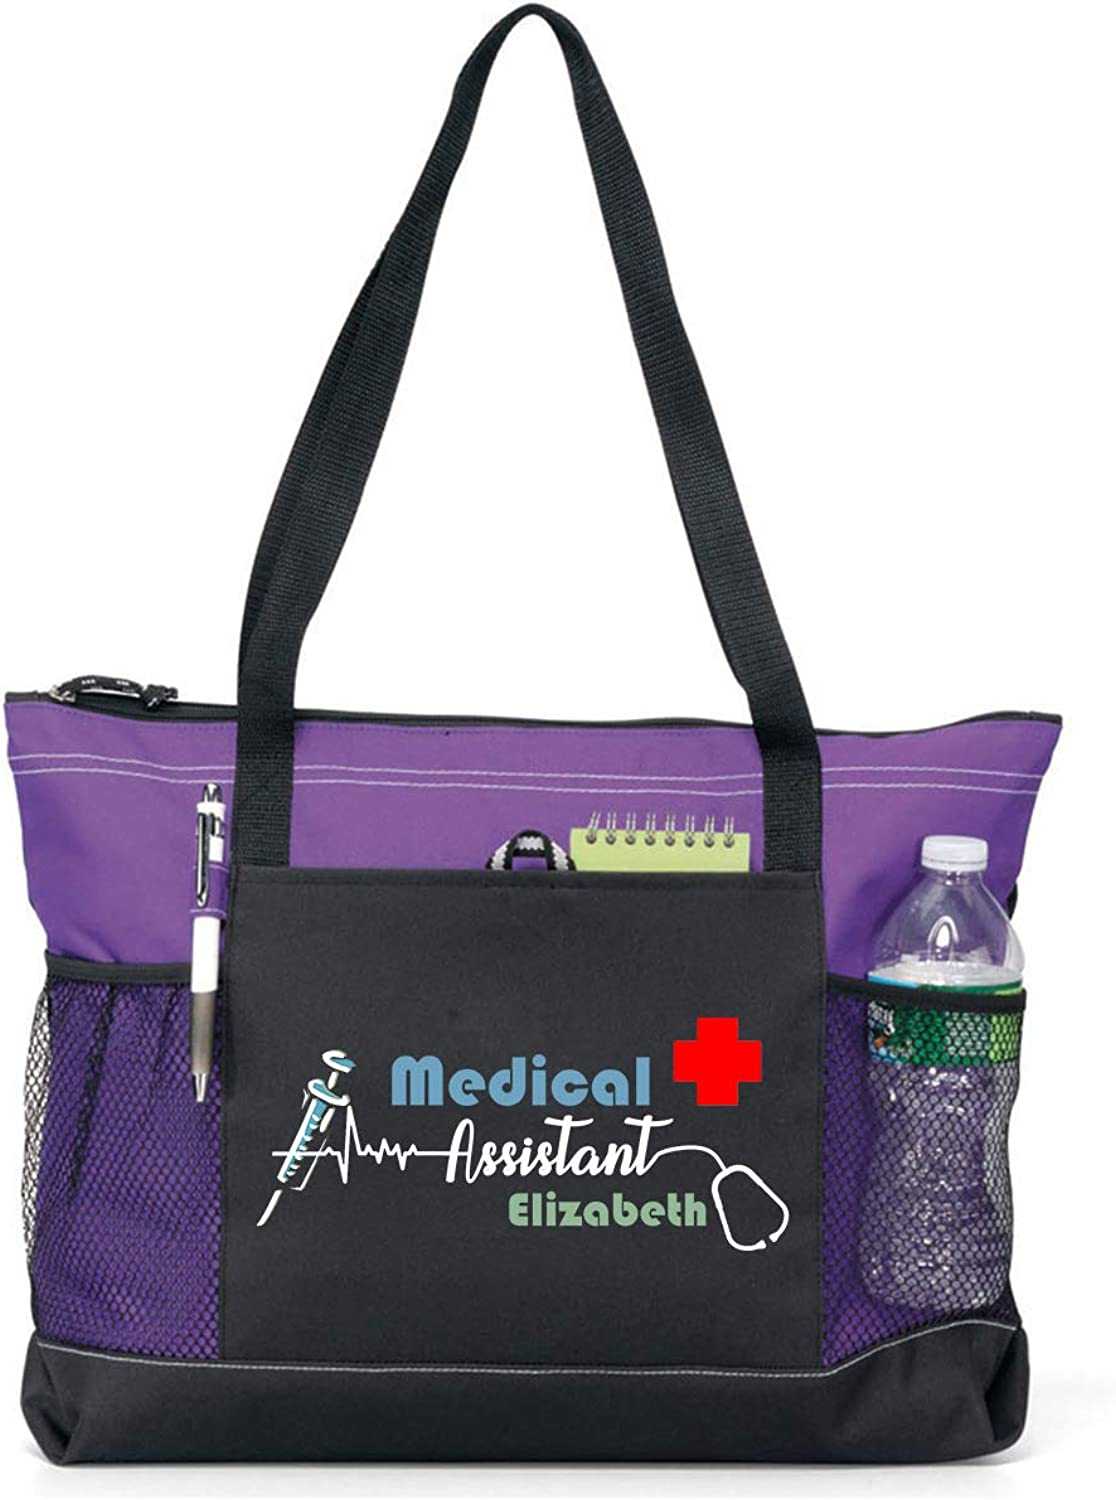 Personalized Medical San Jose Mall Assistant Tote Bag 7 Available Max 83% OFF colors in